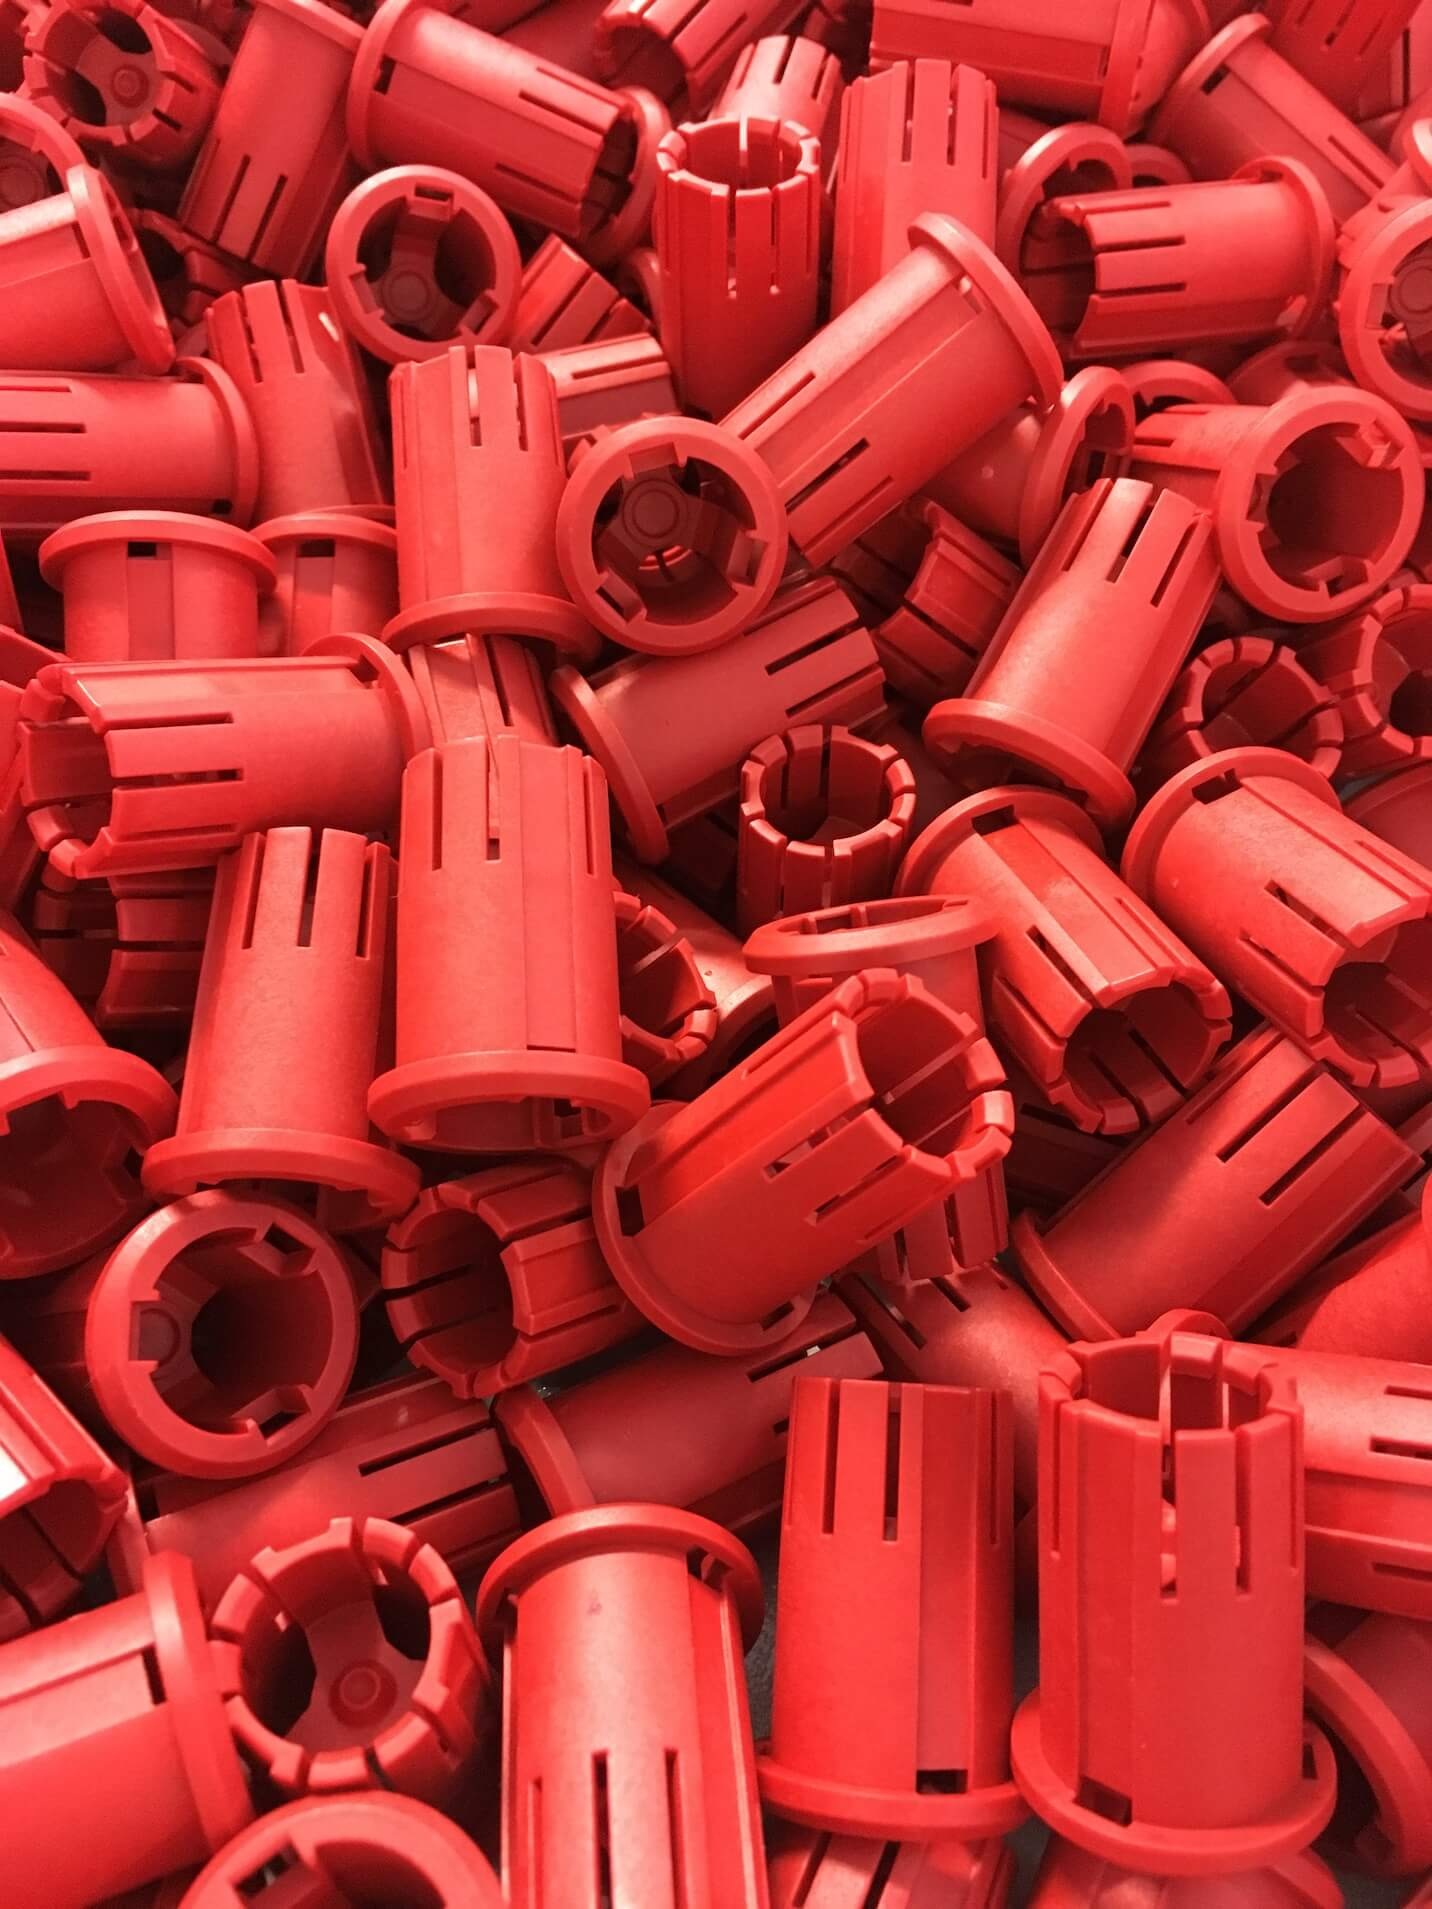 Schneider injection moulded parts